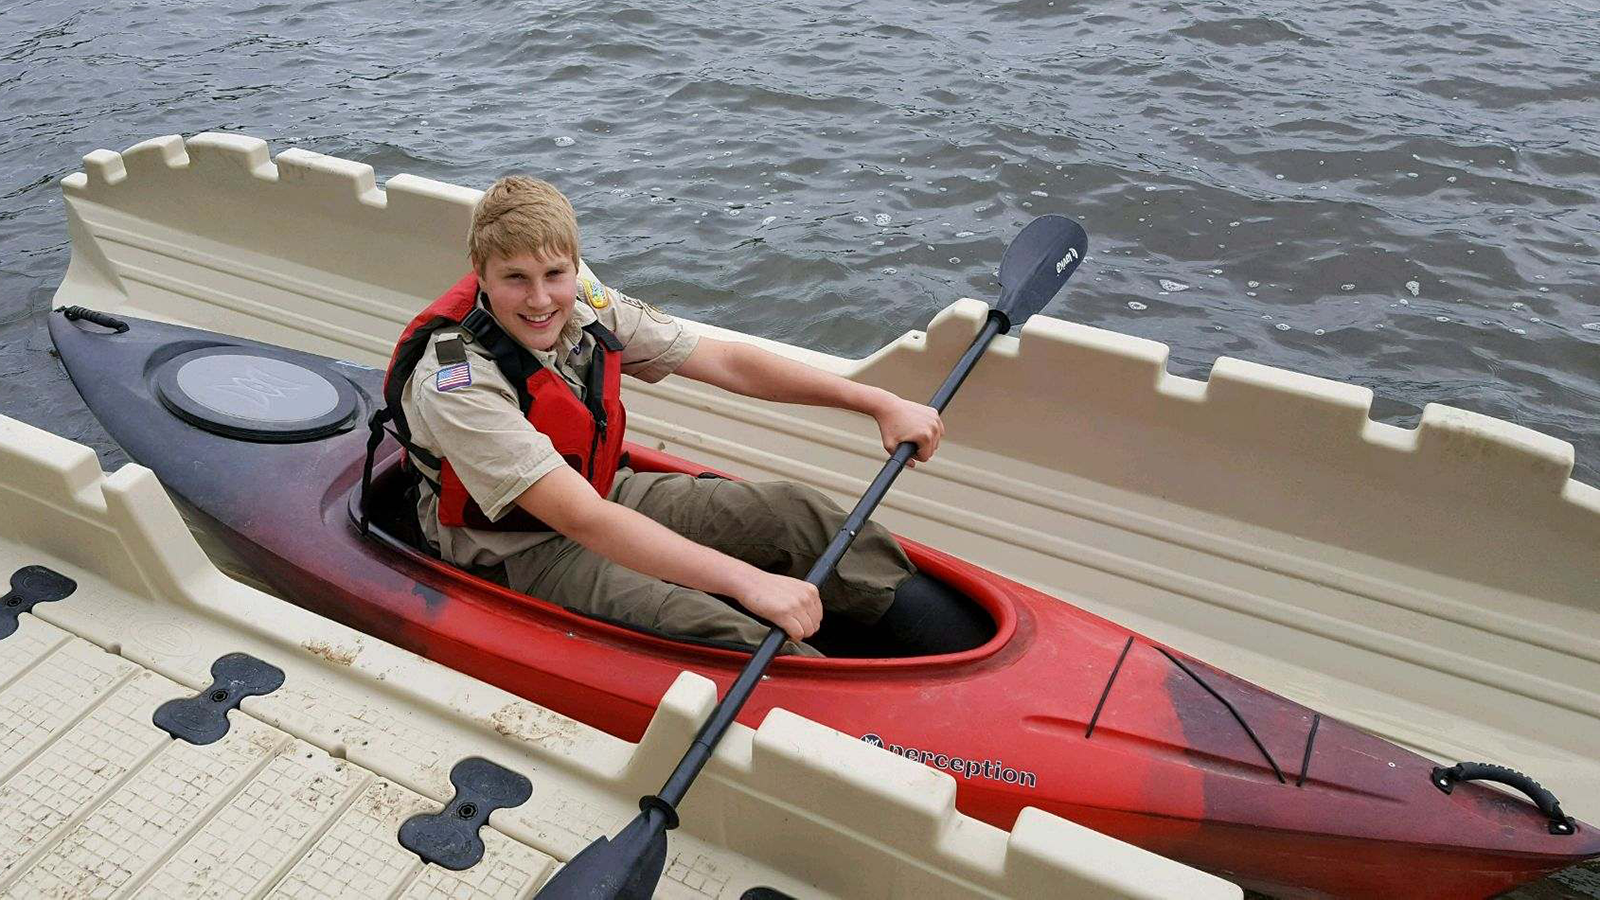 Connor Madsen demonstrates the kayak launch he organized as his Eagle Scout project.